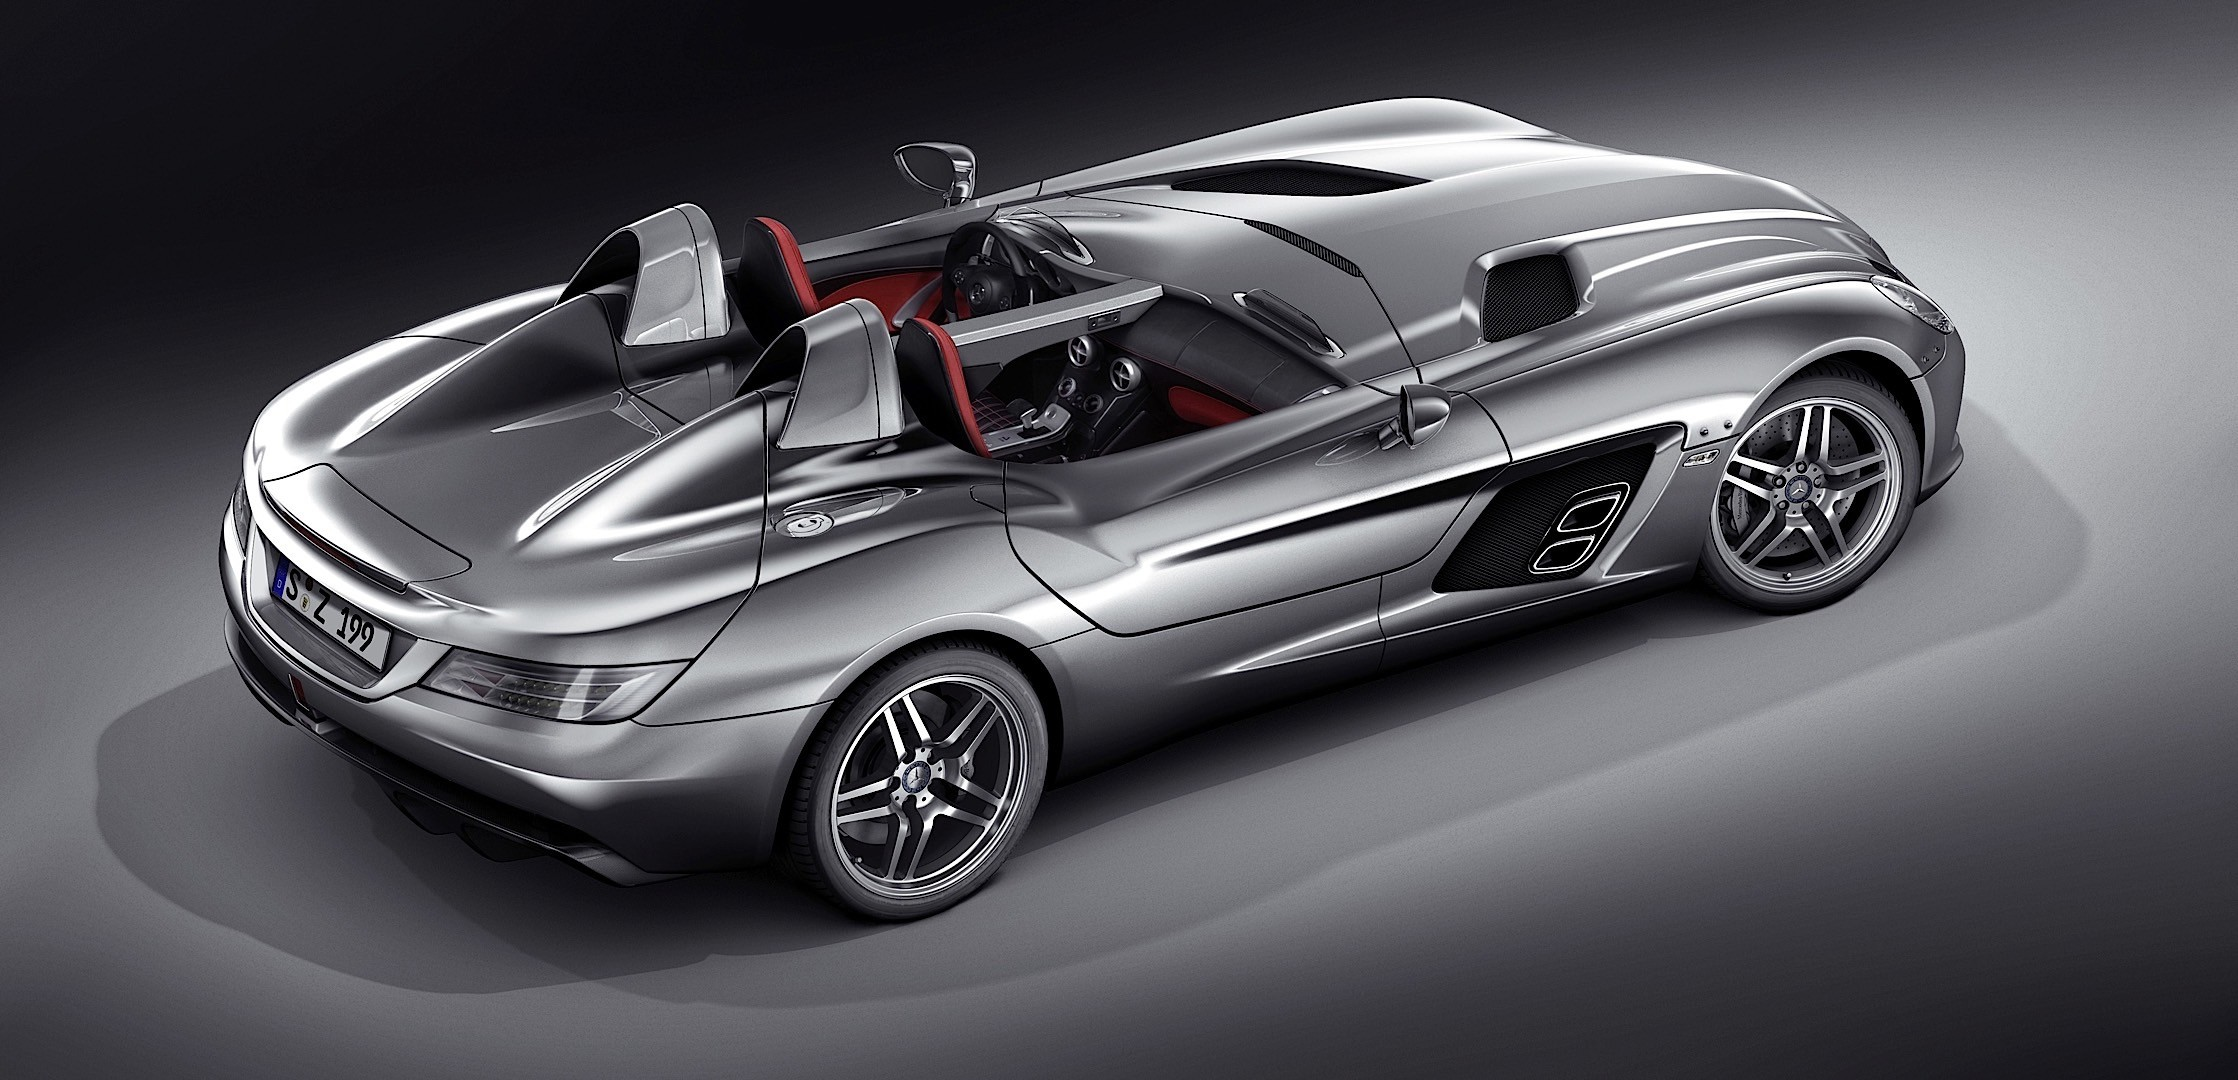 Mclaren slr 722 wiring diagrams repair wiring scheme for Mercedes benz slr mclaren price